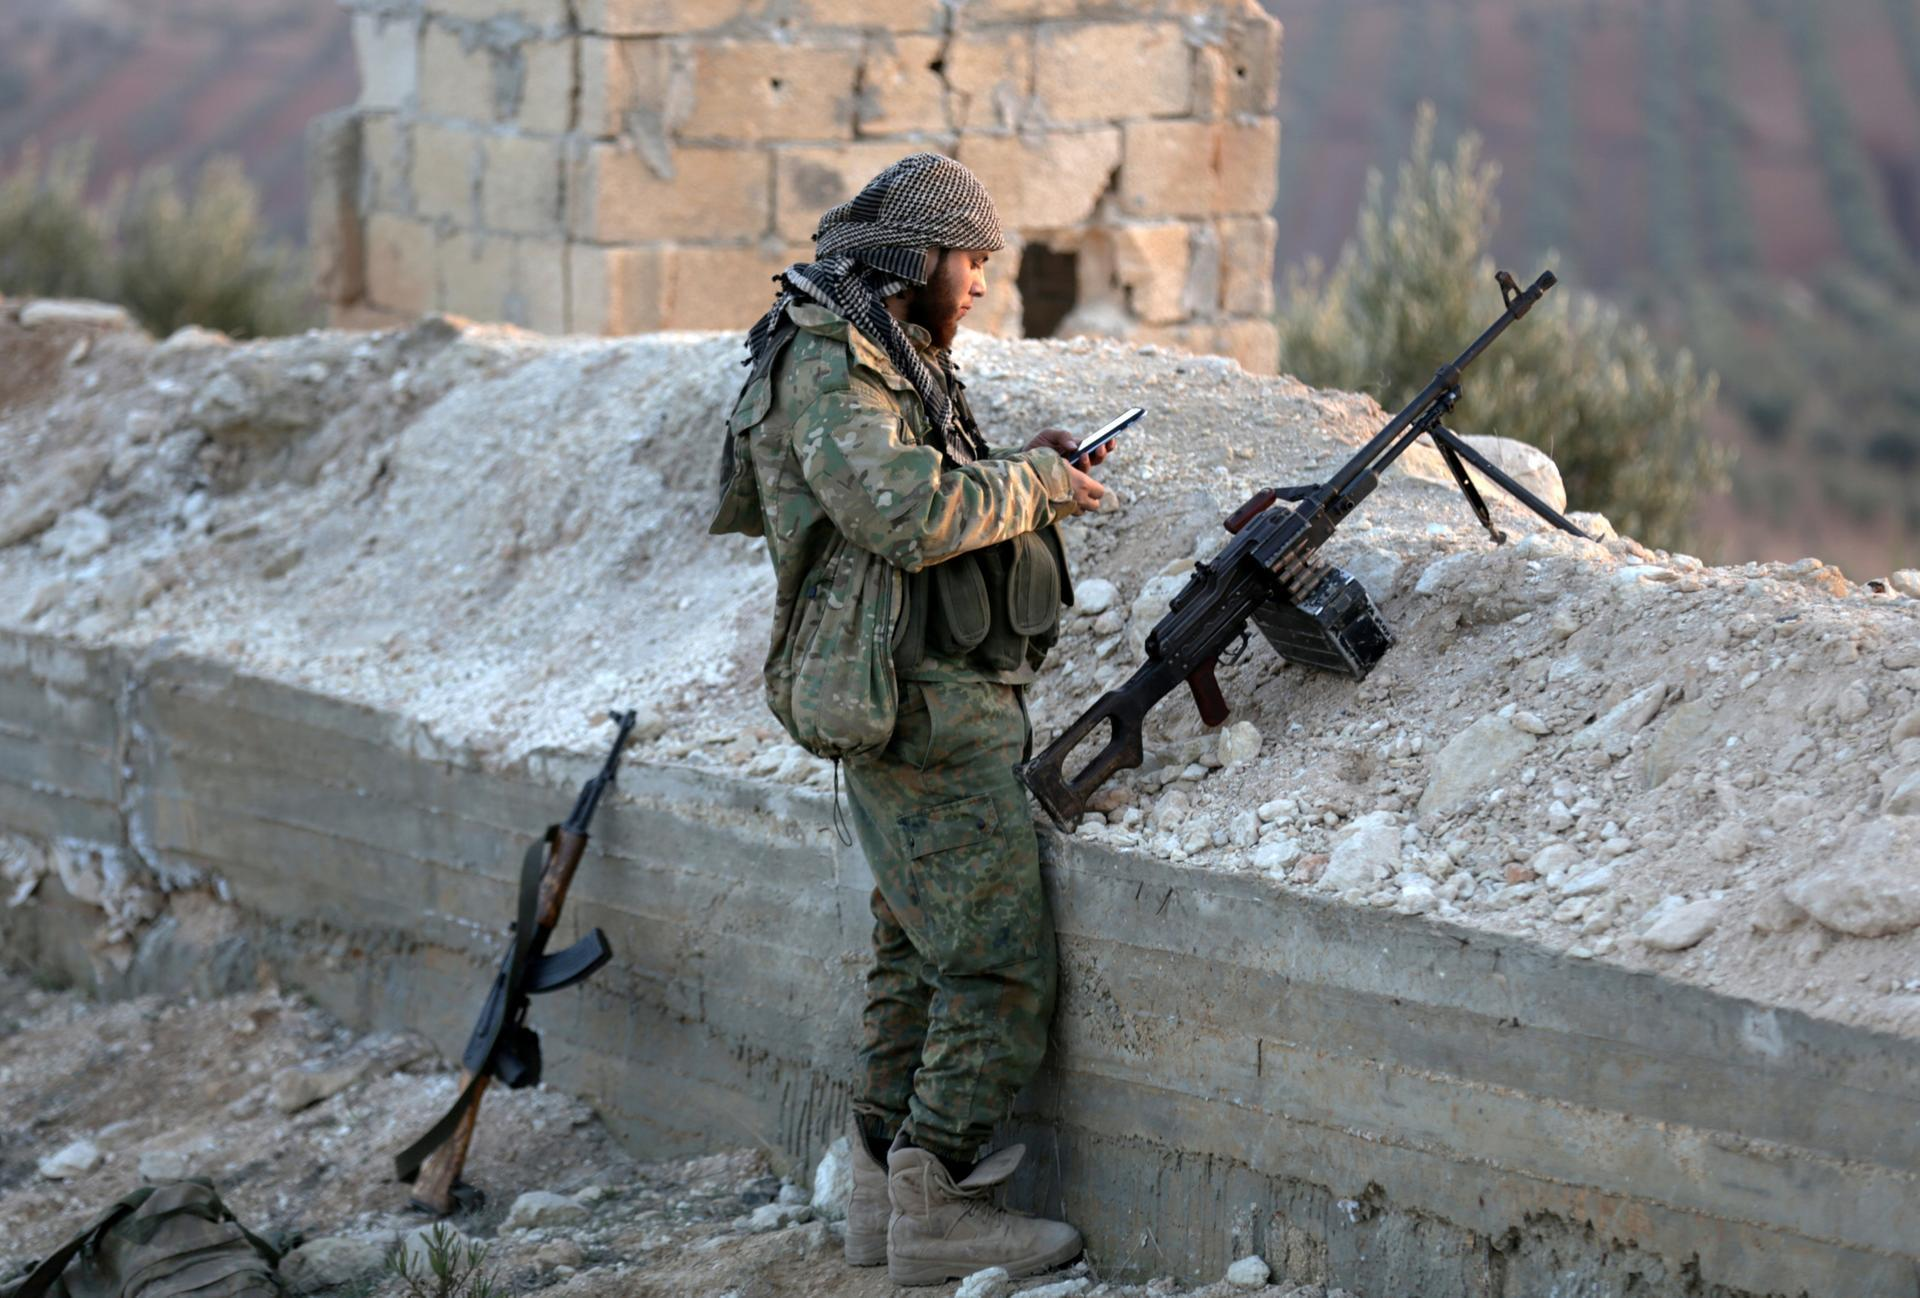 An opposition combatant in Afrin District talking with the mobile phone - Feb. 6, 2018 (Reuters)